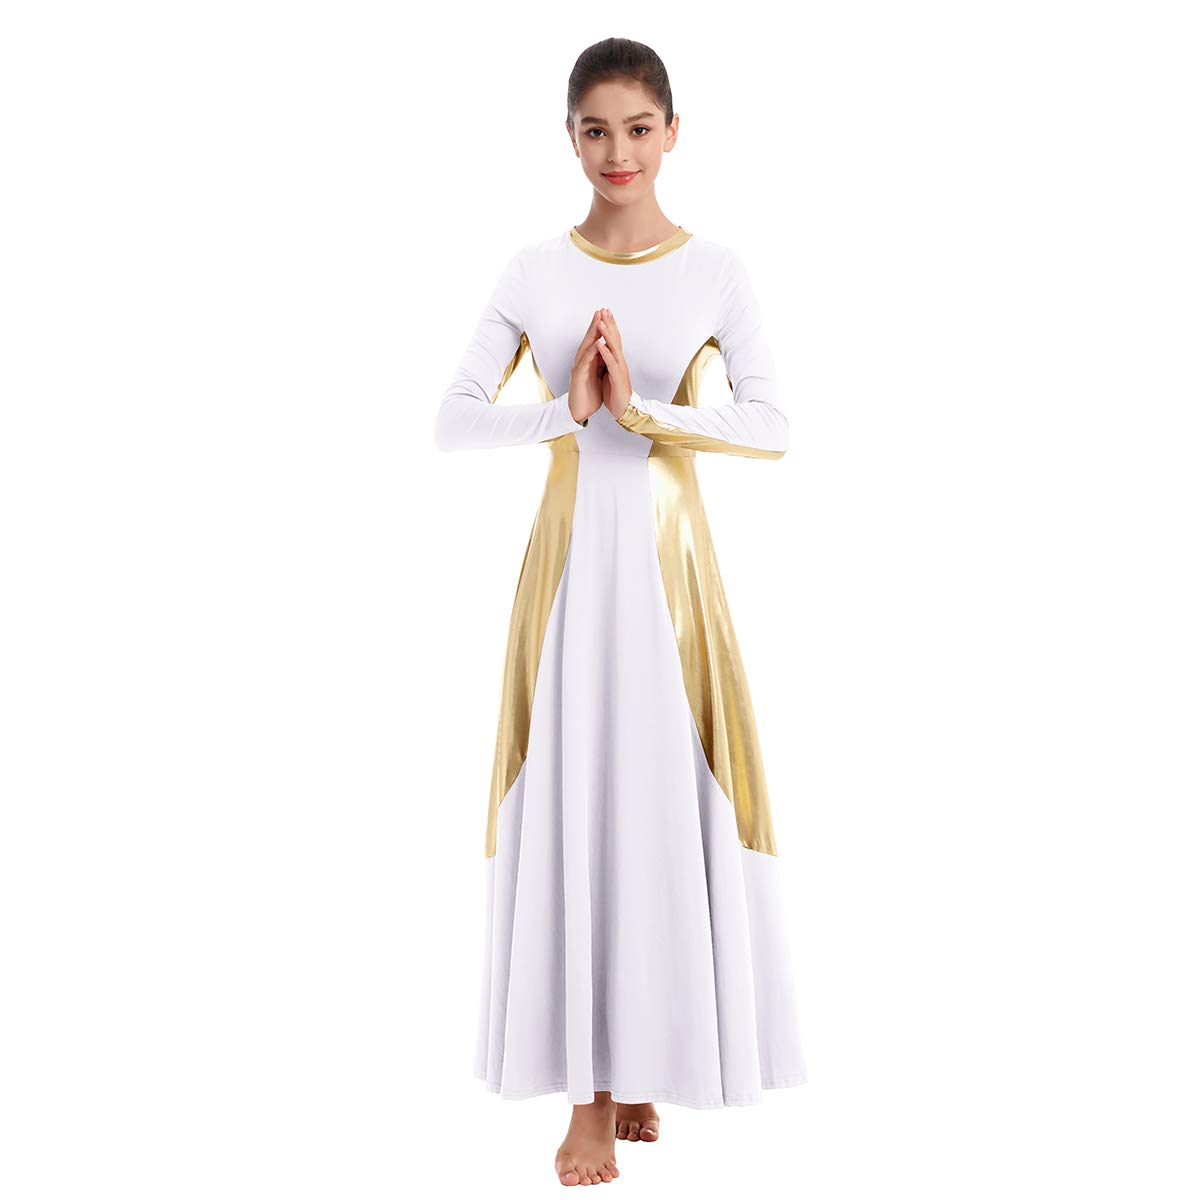 Womens Praise Liturgical Dancewear Robe Long Sleeves Dance Dress Metallic Loose Fit Full Length Tunic Circle Costume Maxi Gown White-Gold XXL by IBAKOM